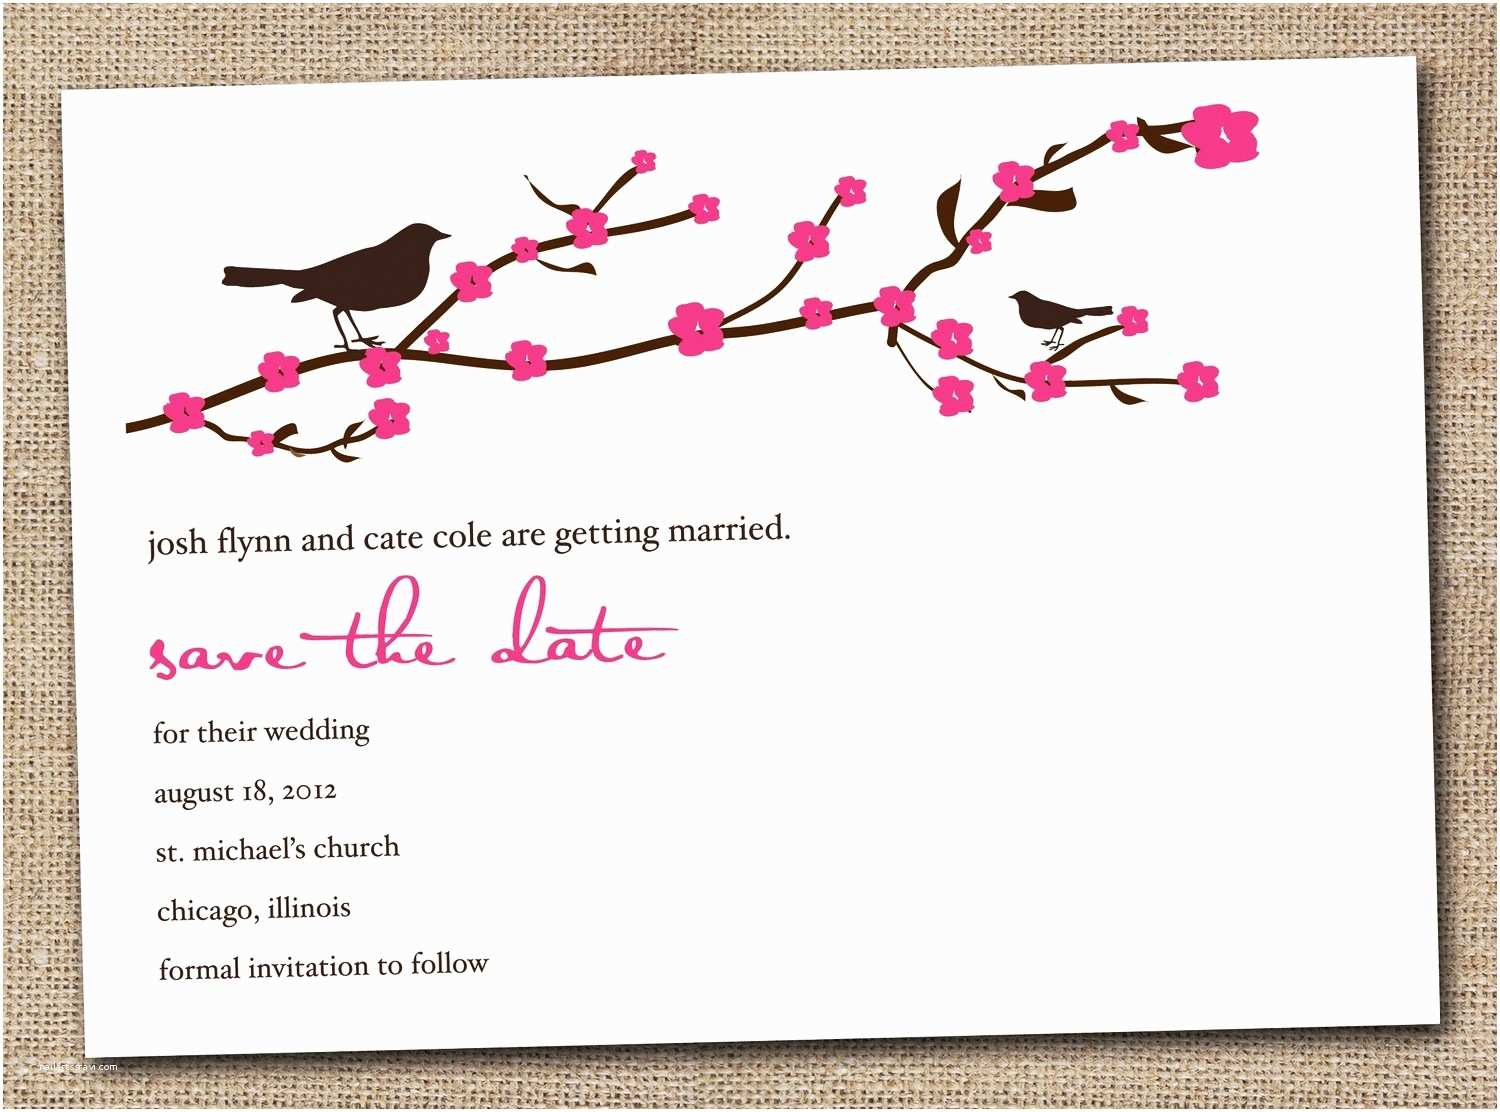 Wedding Invitation Sample Wording Inspirational Funny Wedding Invitations — Criolla Brithday